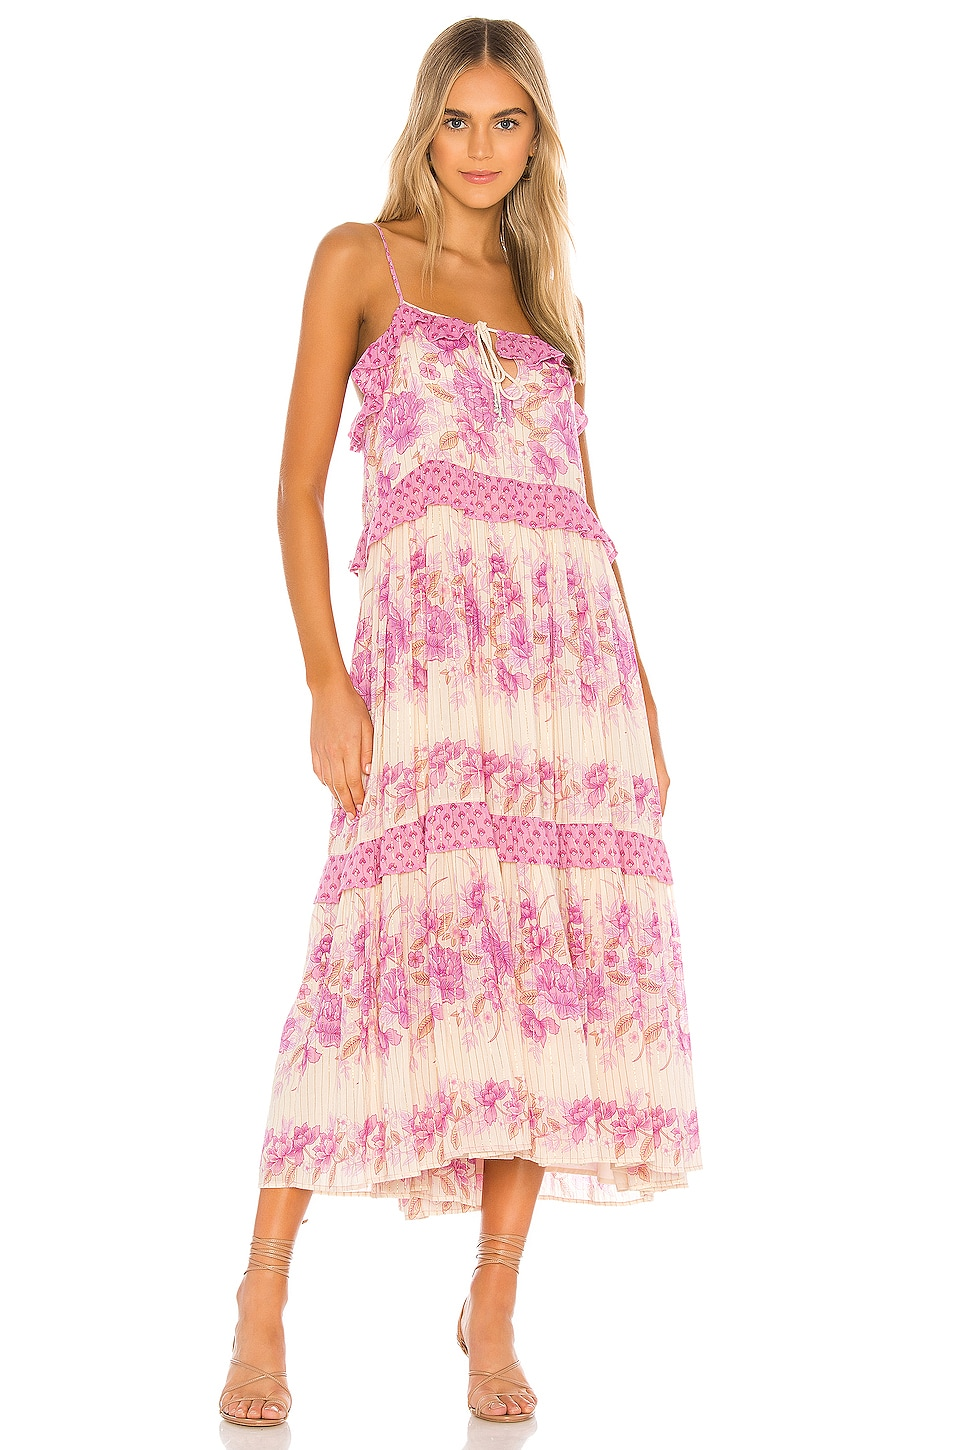 Coco Lei Strappy Gown                   Spell & The Gypsy Collective                                                                                                                             CA$ 377.94 2